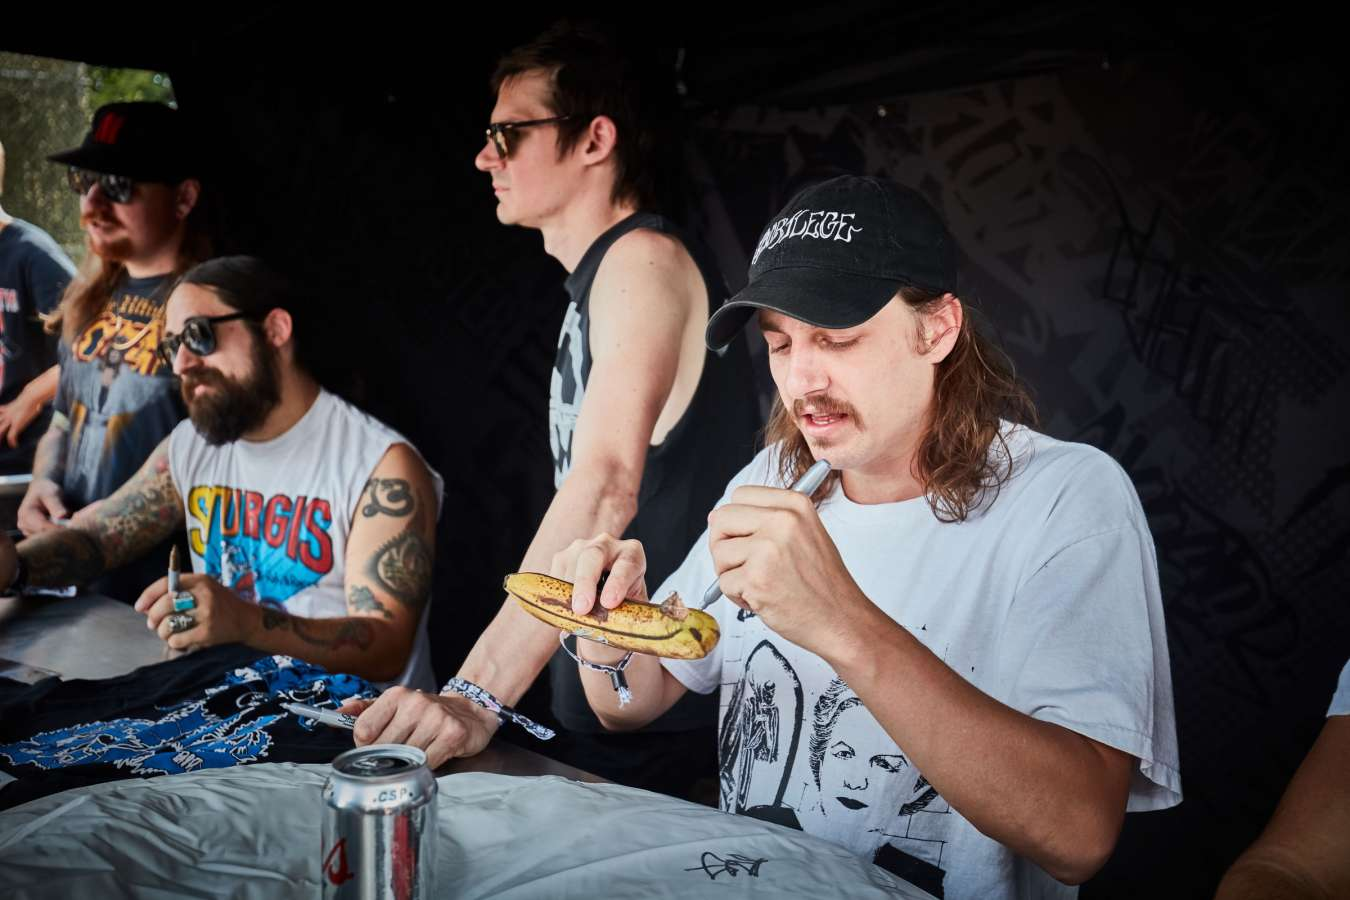 Live and signing photos of Power Trip from Heavy Montreal 2018